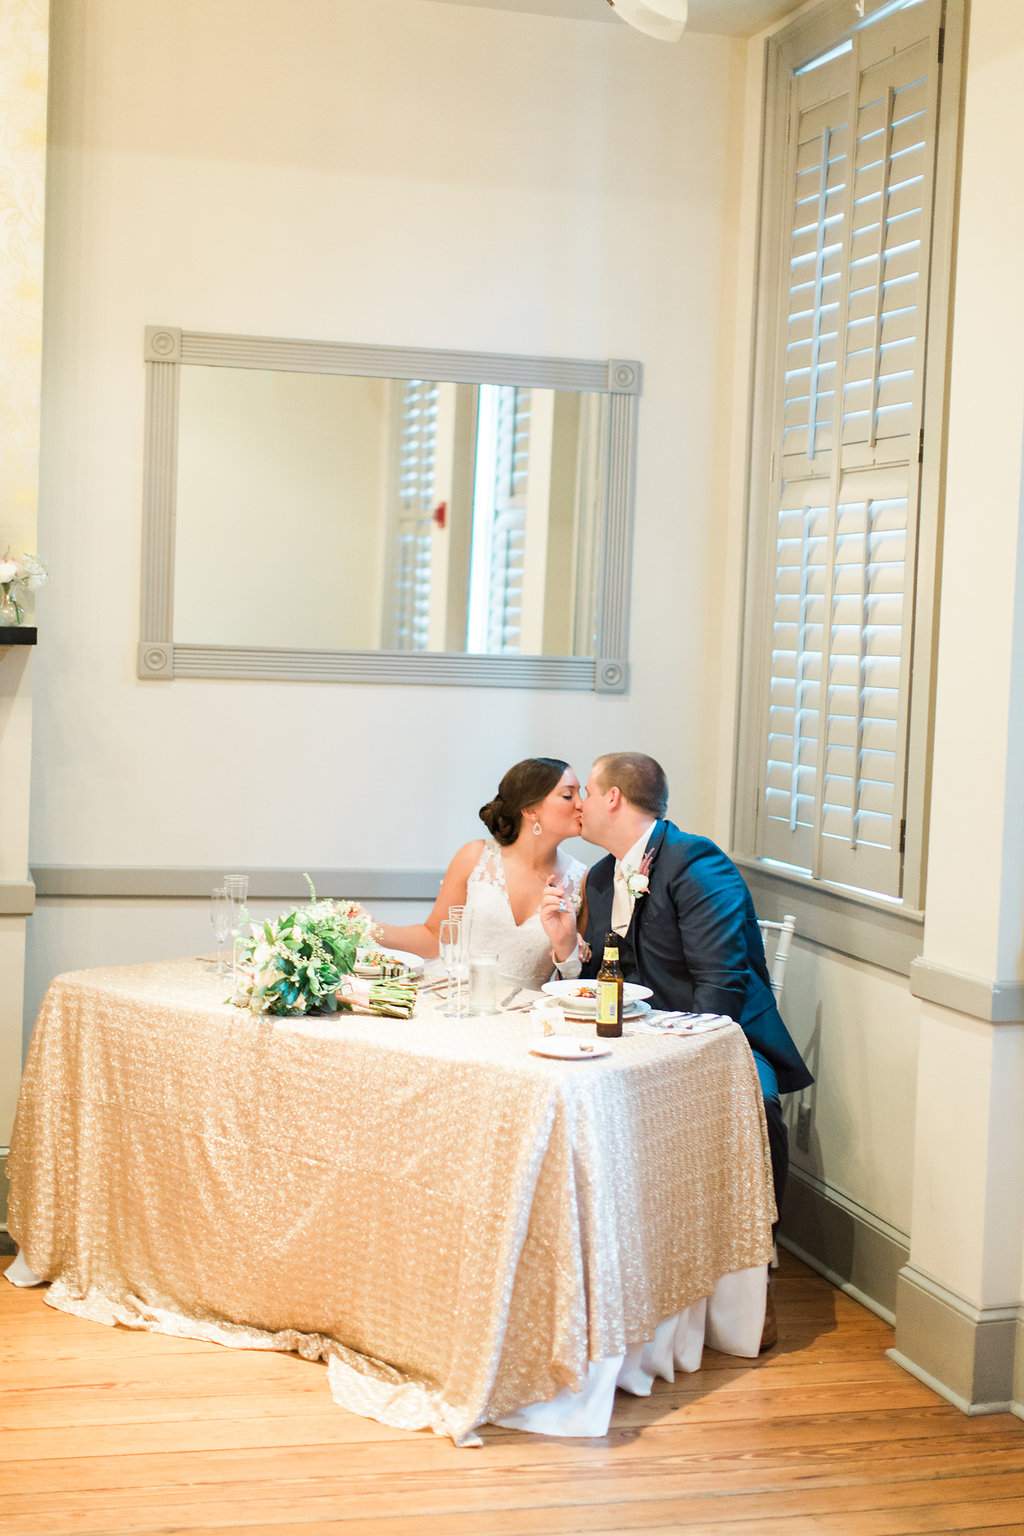 the-happy-bloom-photography-ivory-and-beau-wedding-planning-ivory-and-beau-bridal-boutique-whitfield-chapel-wedding-10-downing-wedding-savannah-wedding-historic-savannah-wedding-savannah-wedding-planner-savannah-weddings-a-to-zinnias-52.jpg